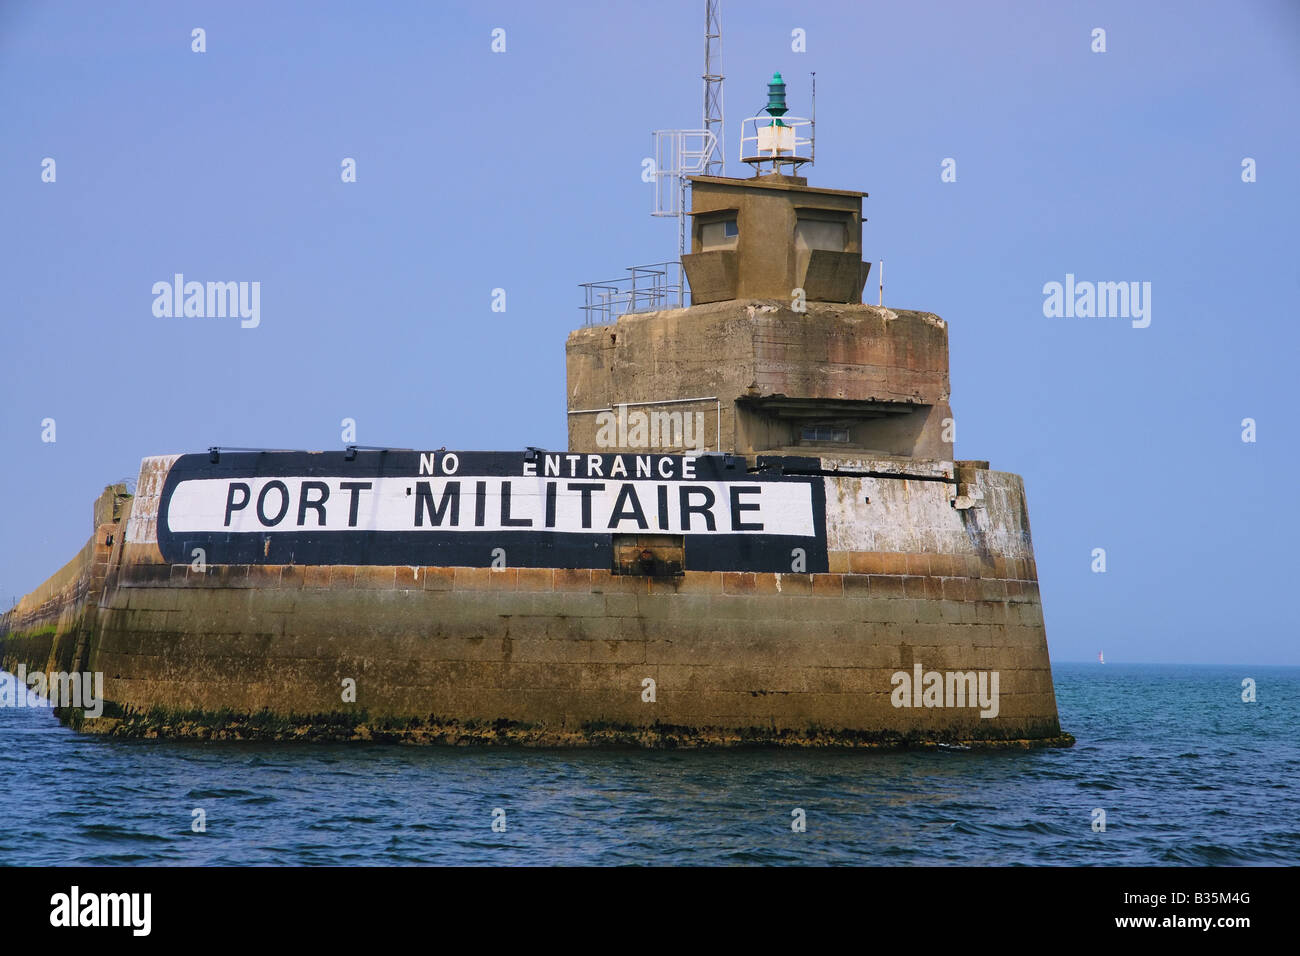 A breakwater with a guard post and 'no entrance - port militaire' [Military port] in the Cherbourg port, - Stock Image